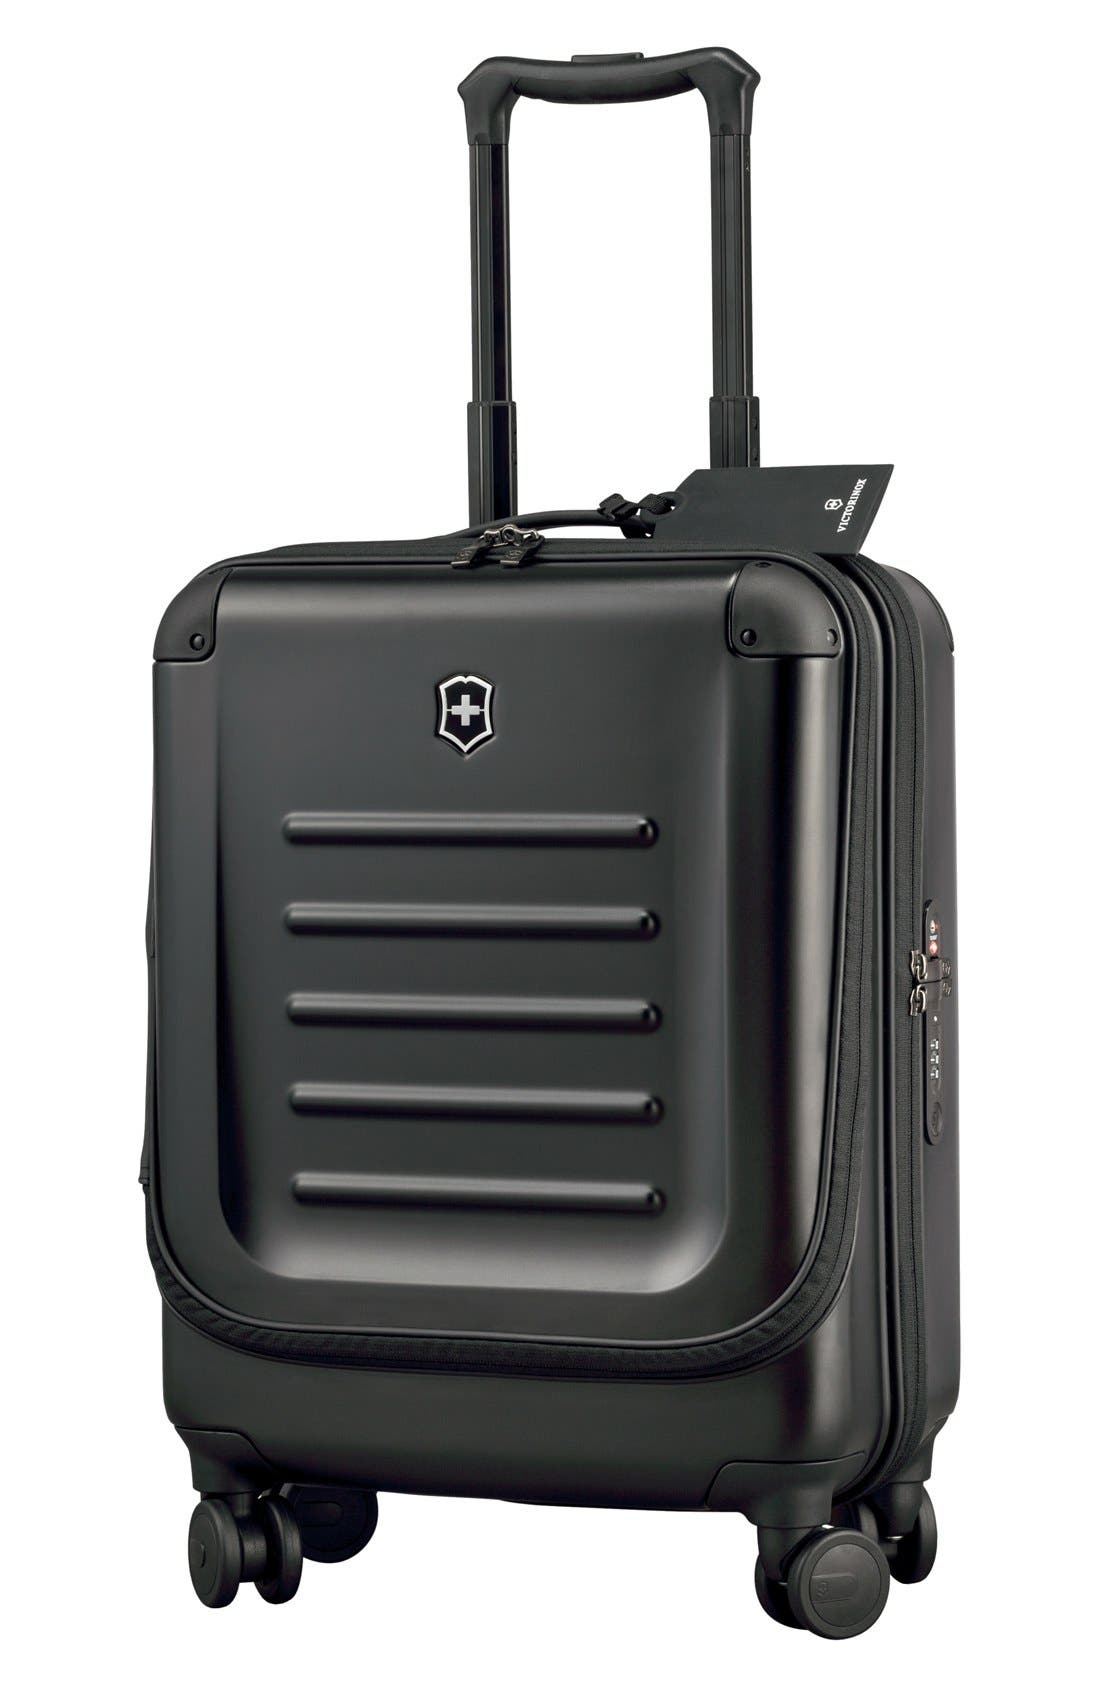 Spectra 2.0 Dual Access Global Hard Sided Rolling 22-Inch Carry-On,                             Main thumbnail 1, color,                             Black